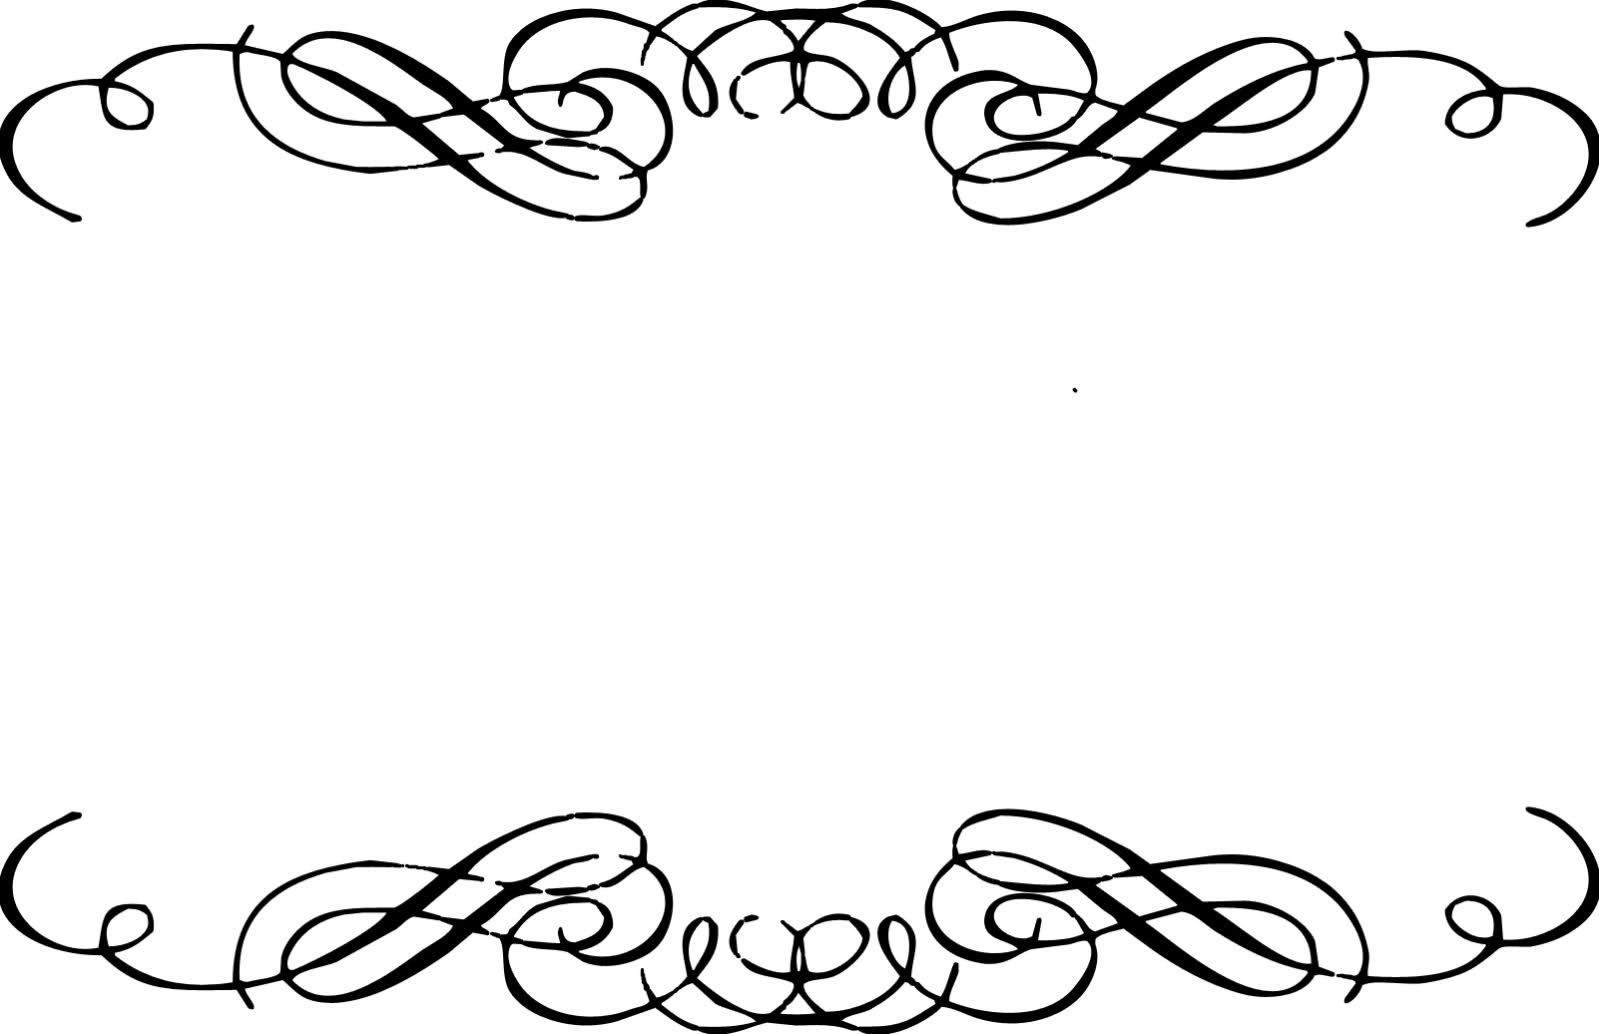 11 Corner Flourish Free Vector Free Cliparts That You Can Download To